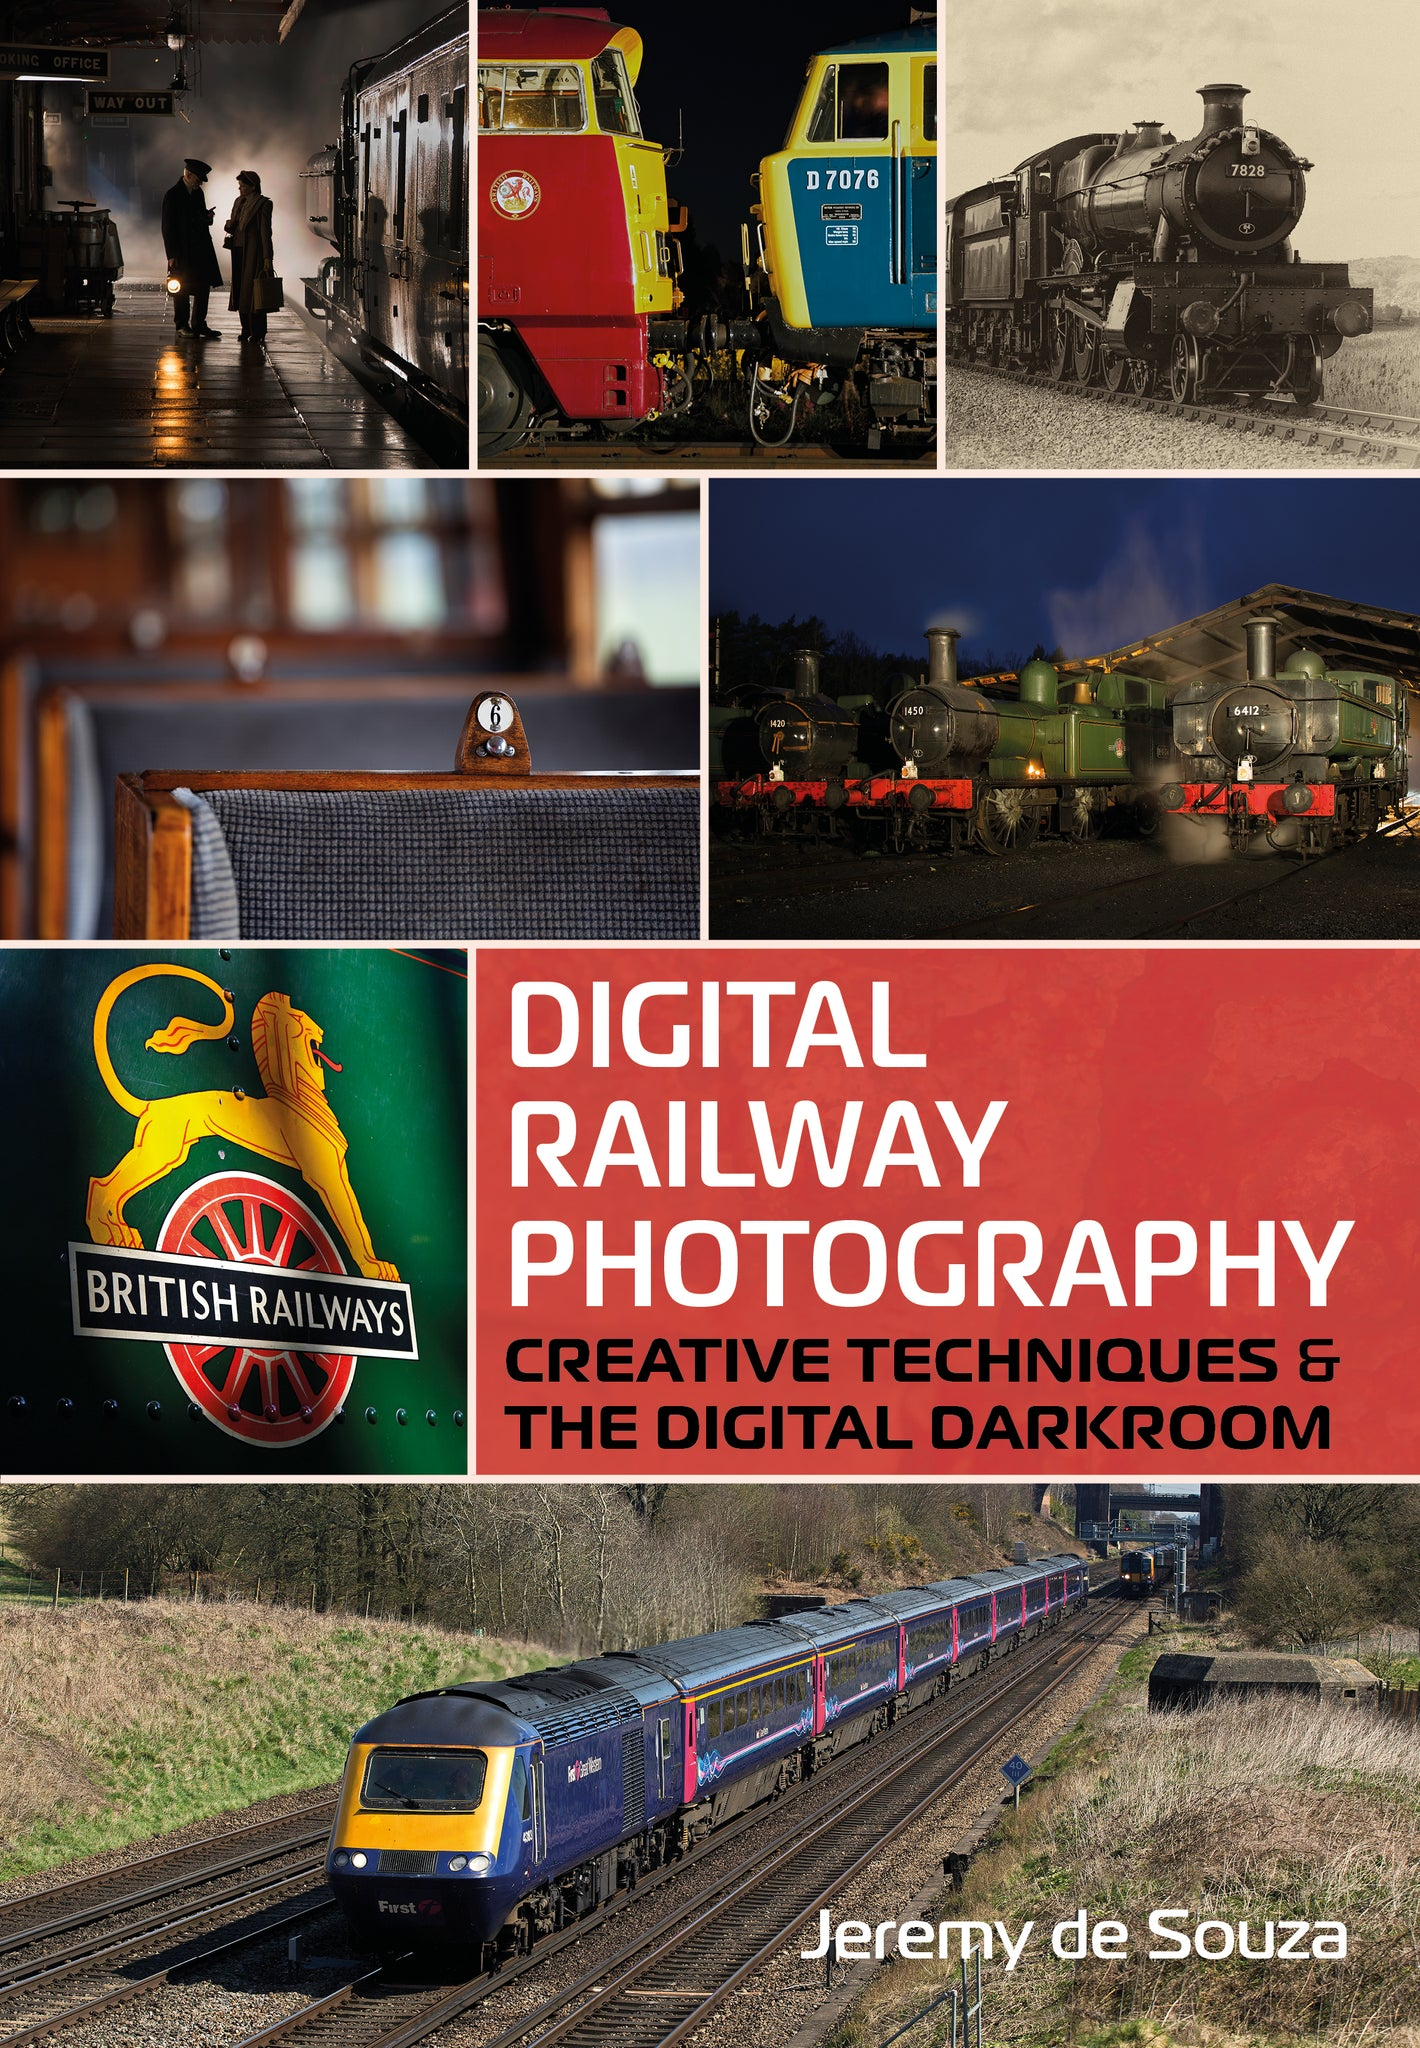 Digital Railway Photography: Creative Techniques & the Digital Darkroom